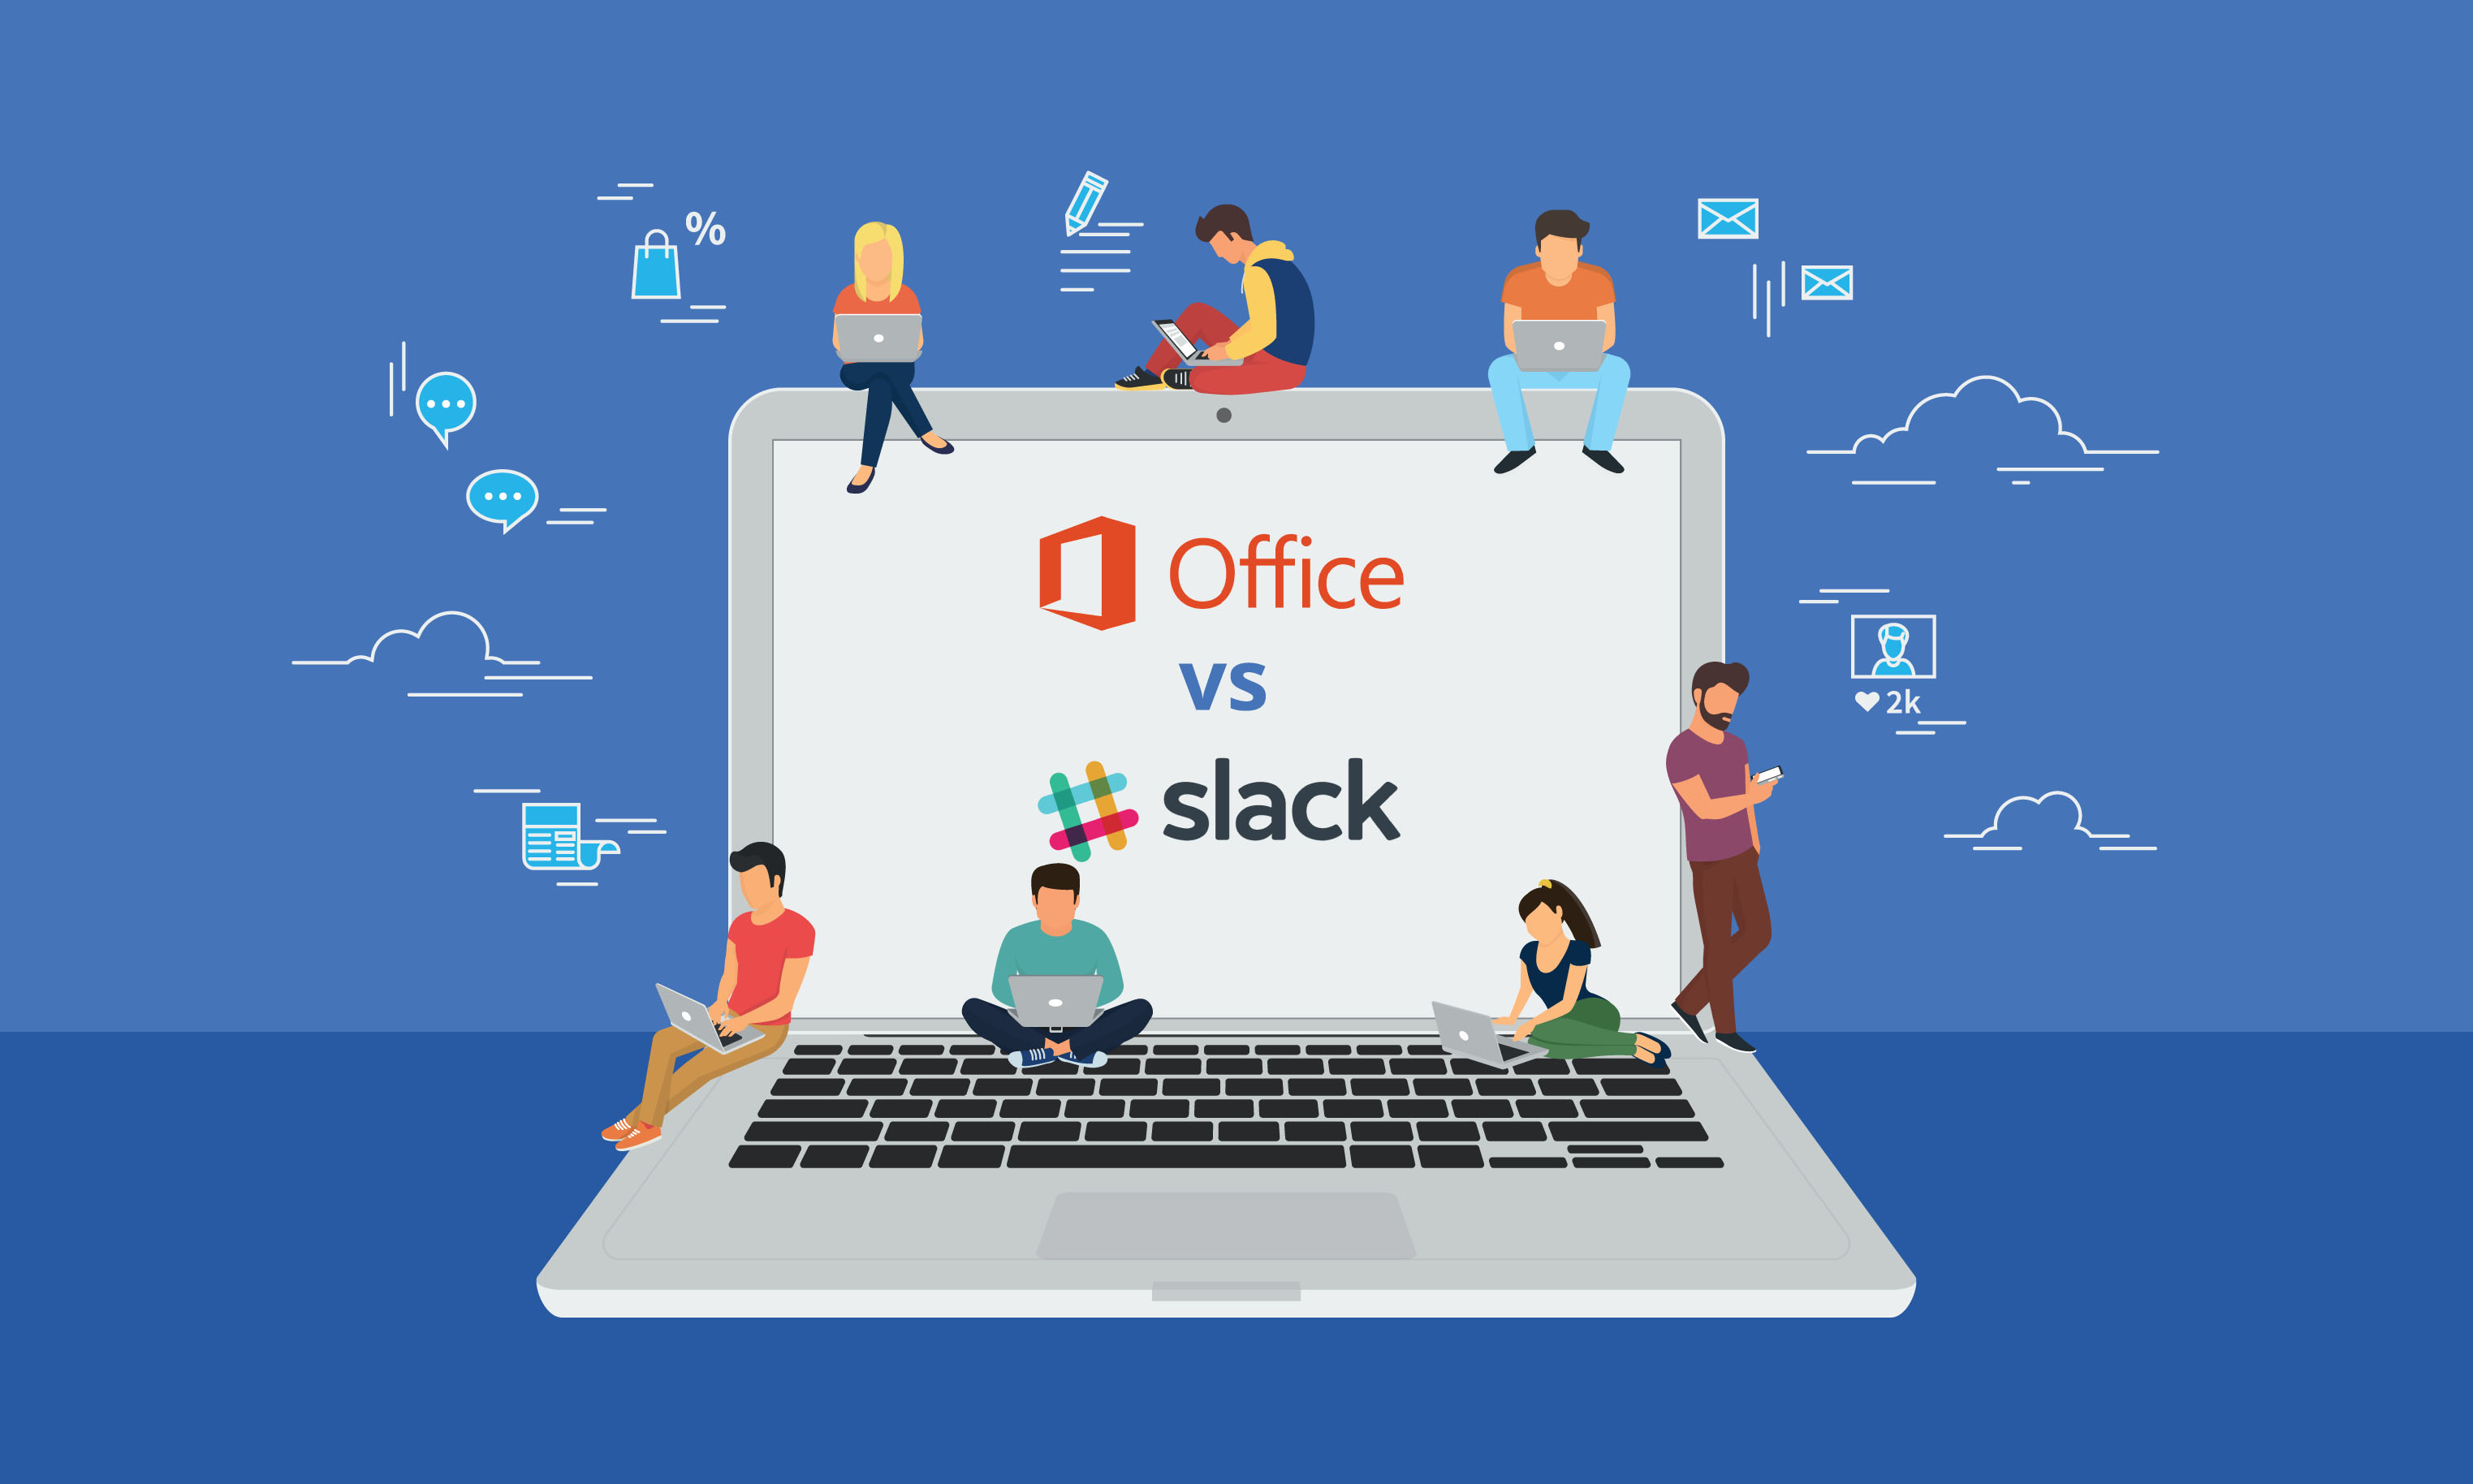 Office vs Slack